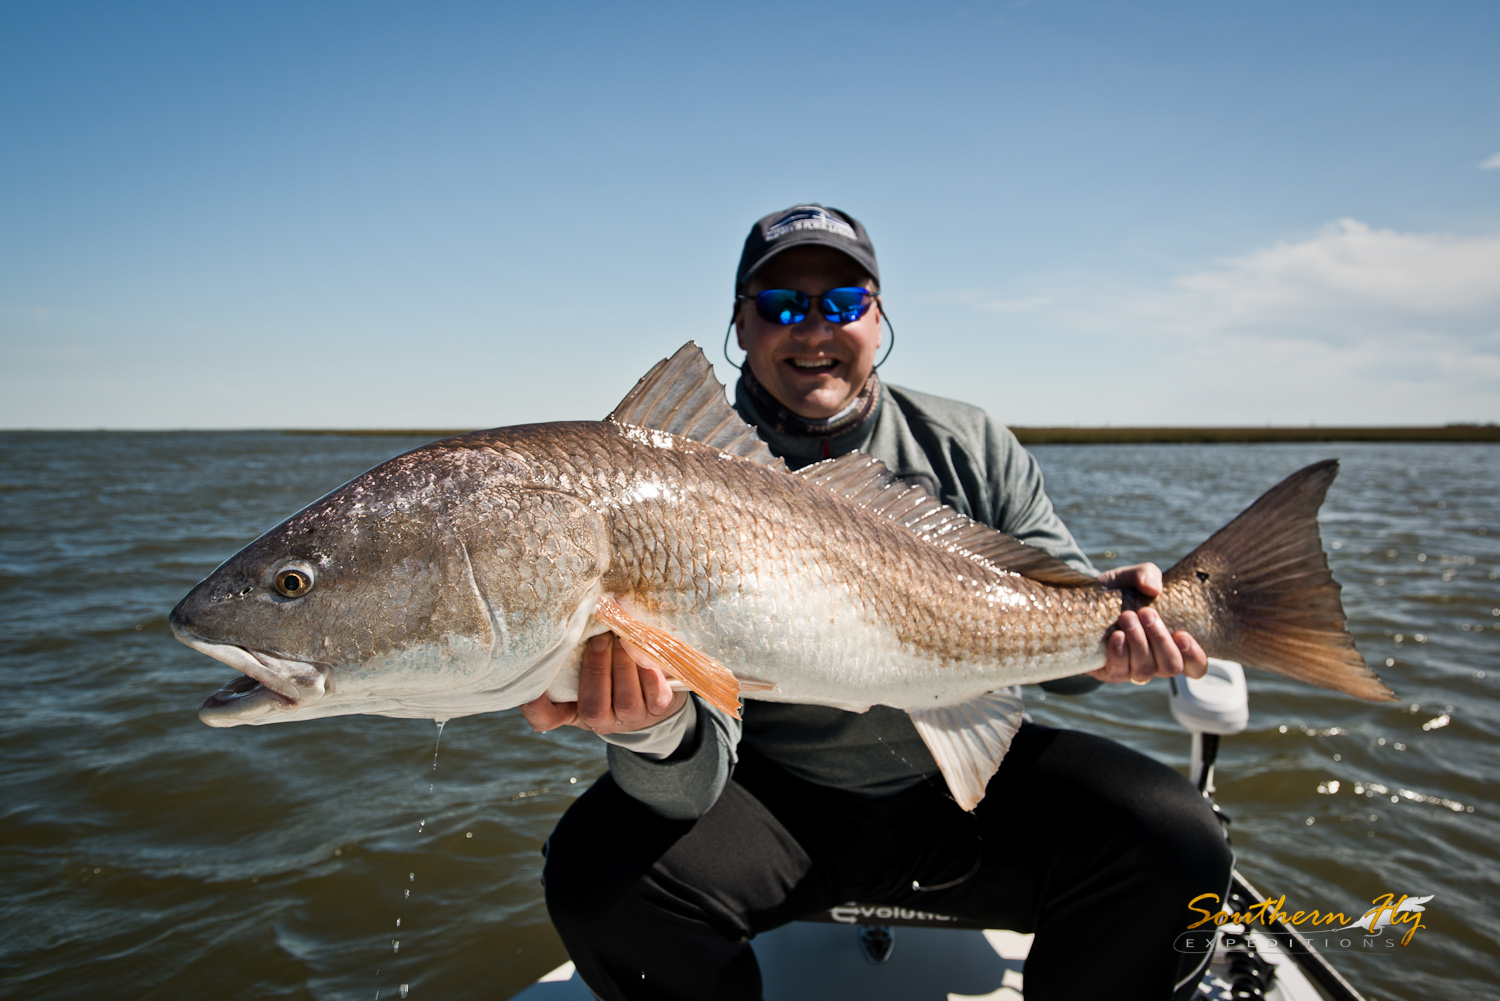 2019-03-19_SouthernFlyExpeditions_NewOrleans_ToddSchroeder-1.jpg